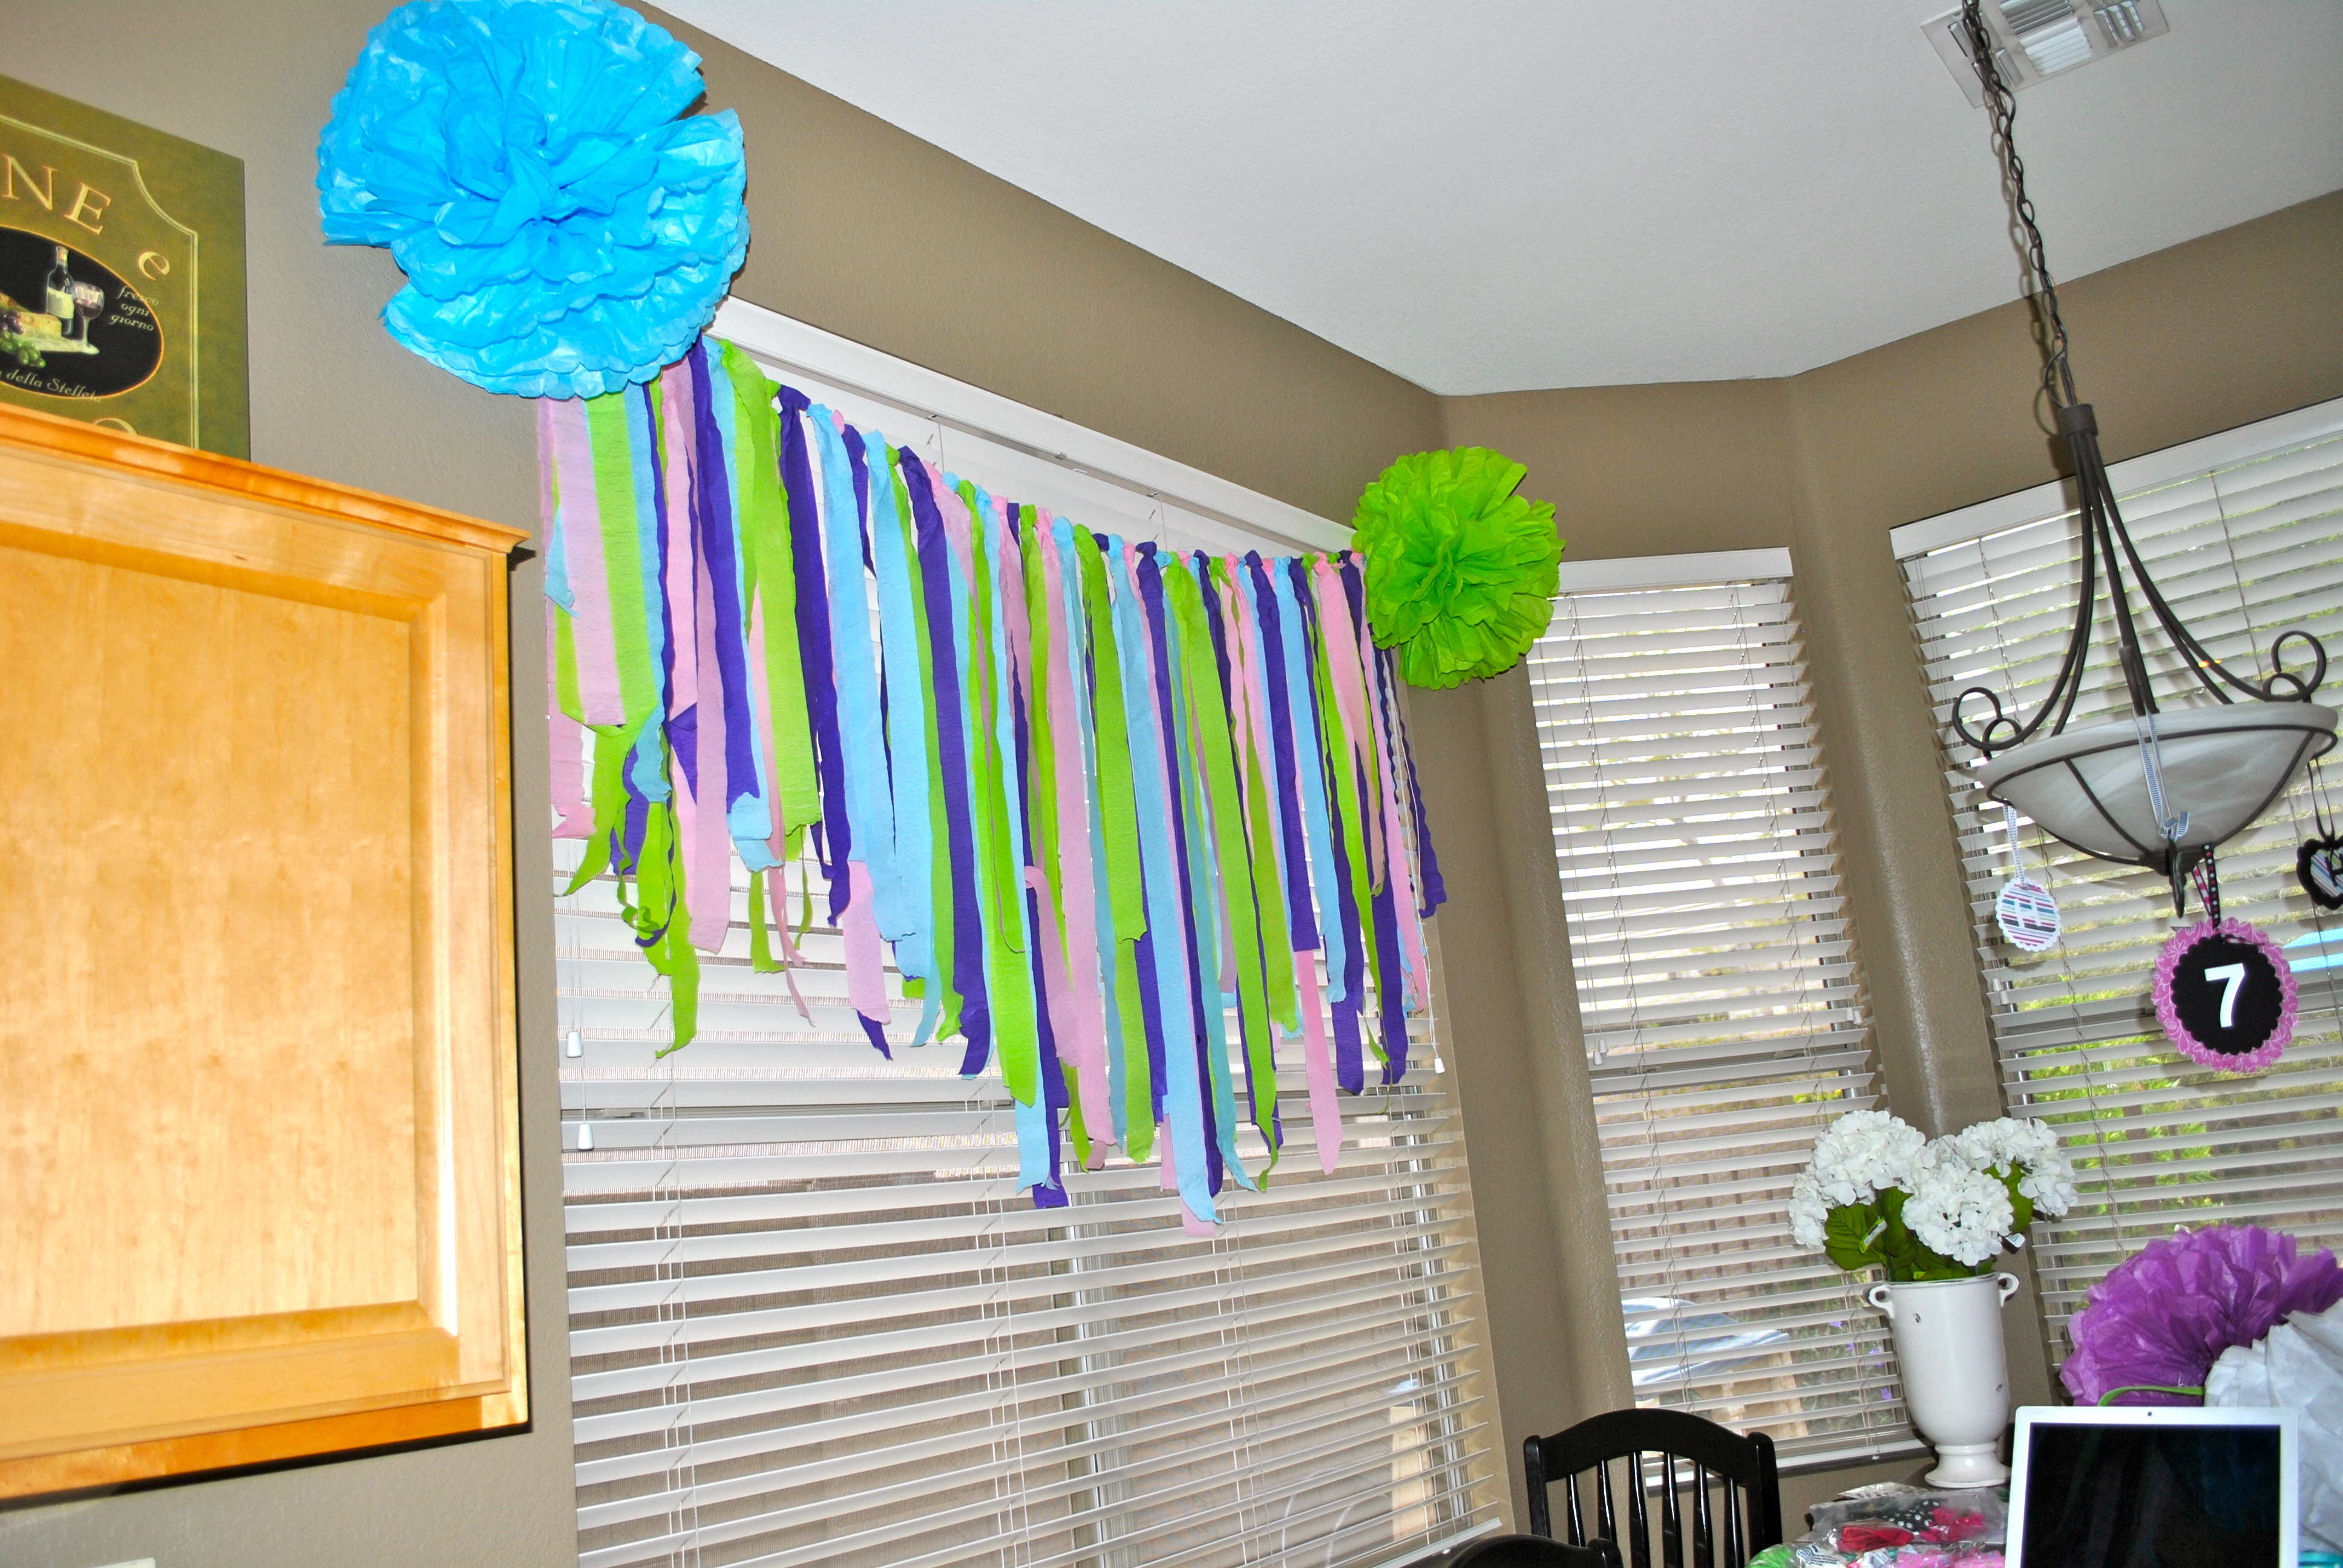 Day 134 get crafty spa sleepover party decorations - Birthday decorations with crepe paper ...